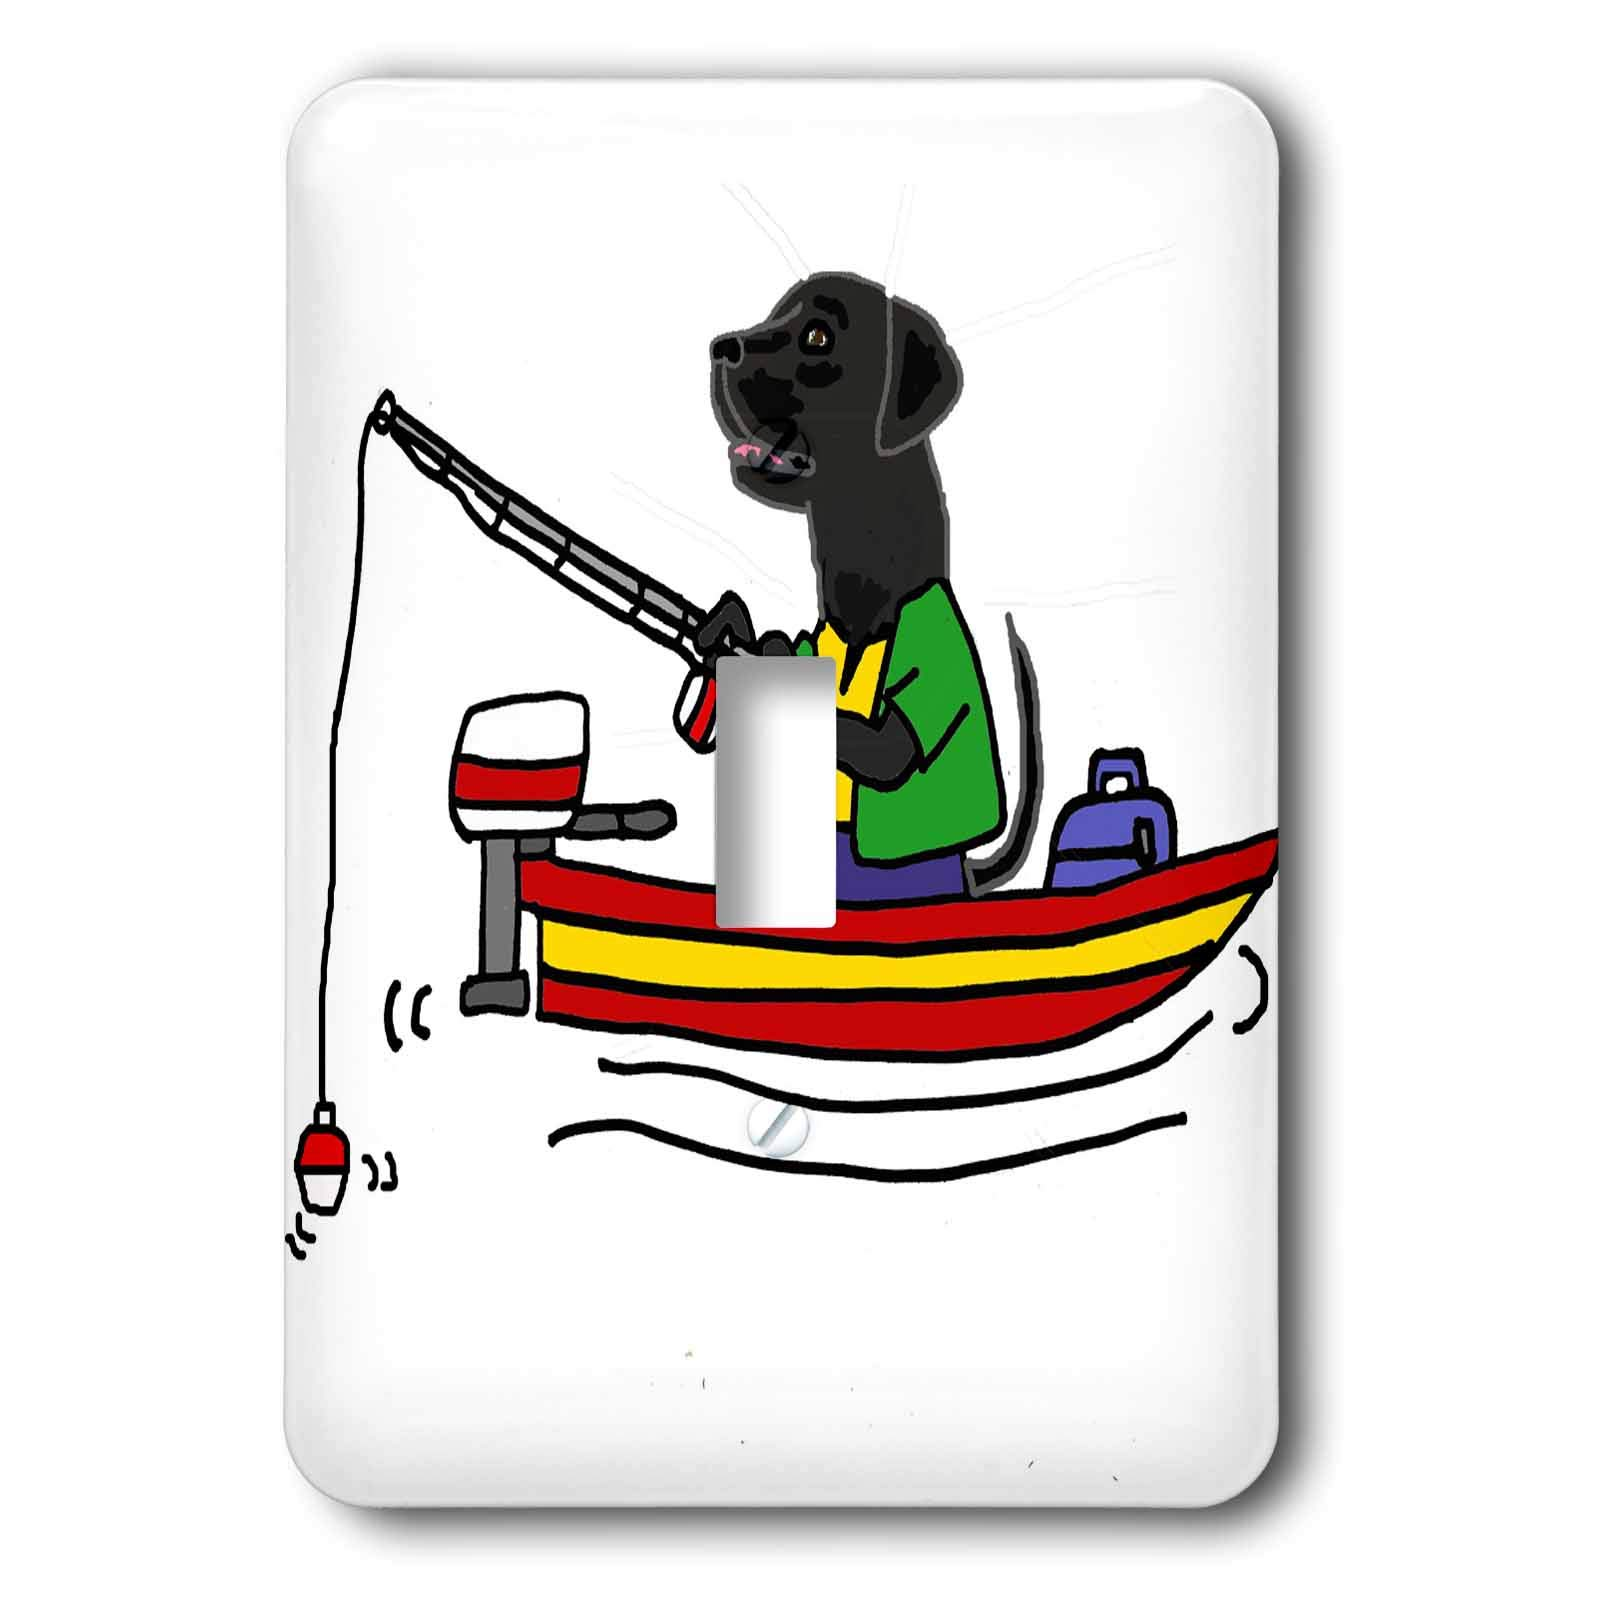 3dRose All Smiles Art Sports and Hobbies - Cute Funny Black Labrador Retriever Dog Fishing Cartoon - Light Switch Covers - single toggle switch (lsp_288068_1)